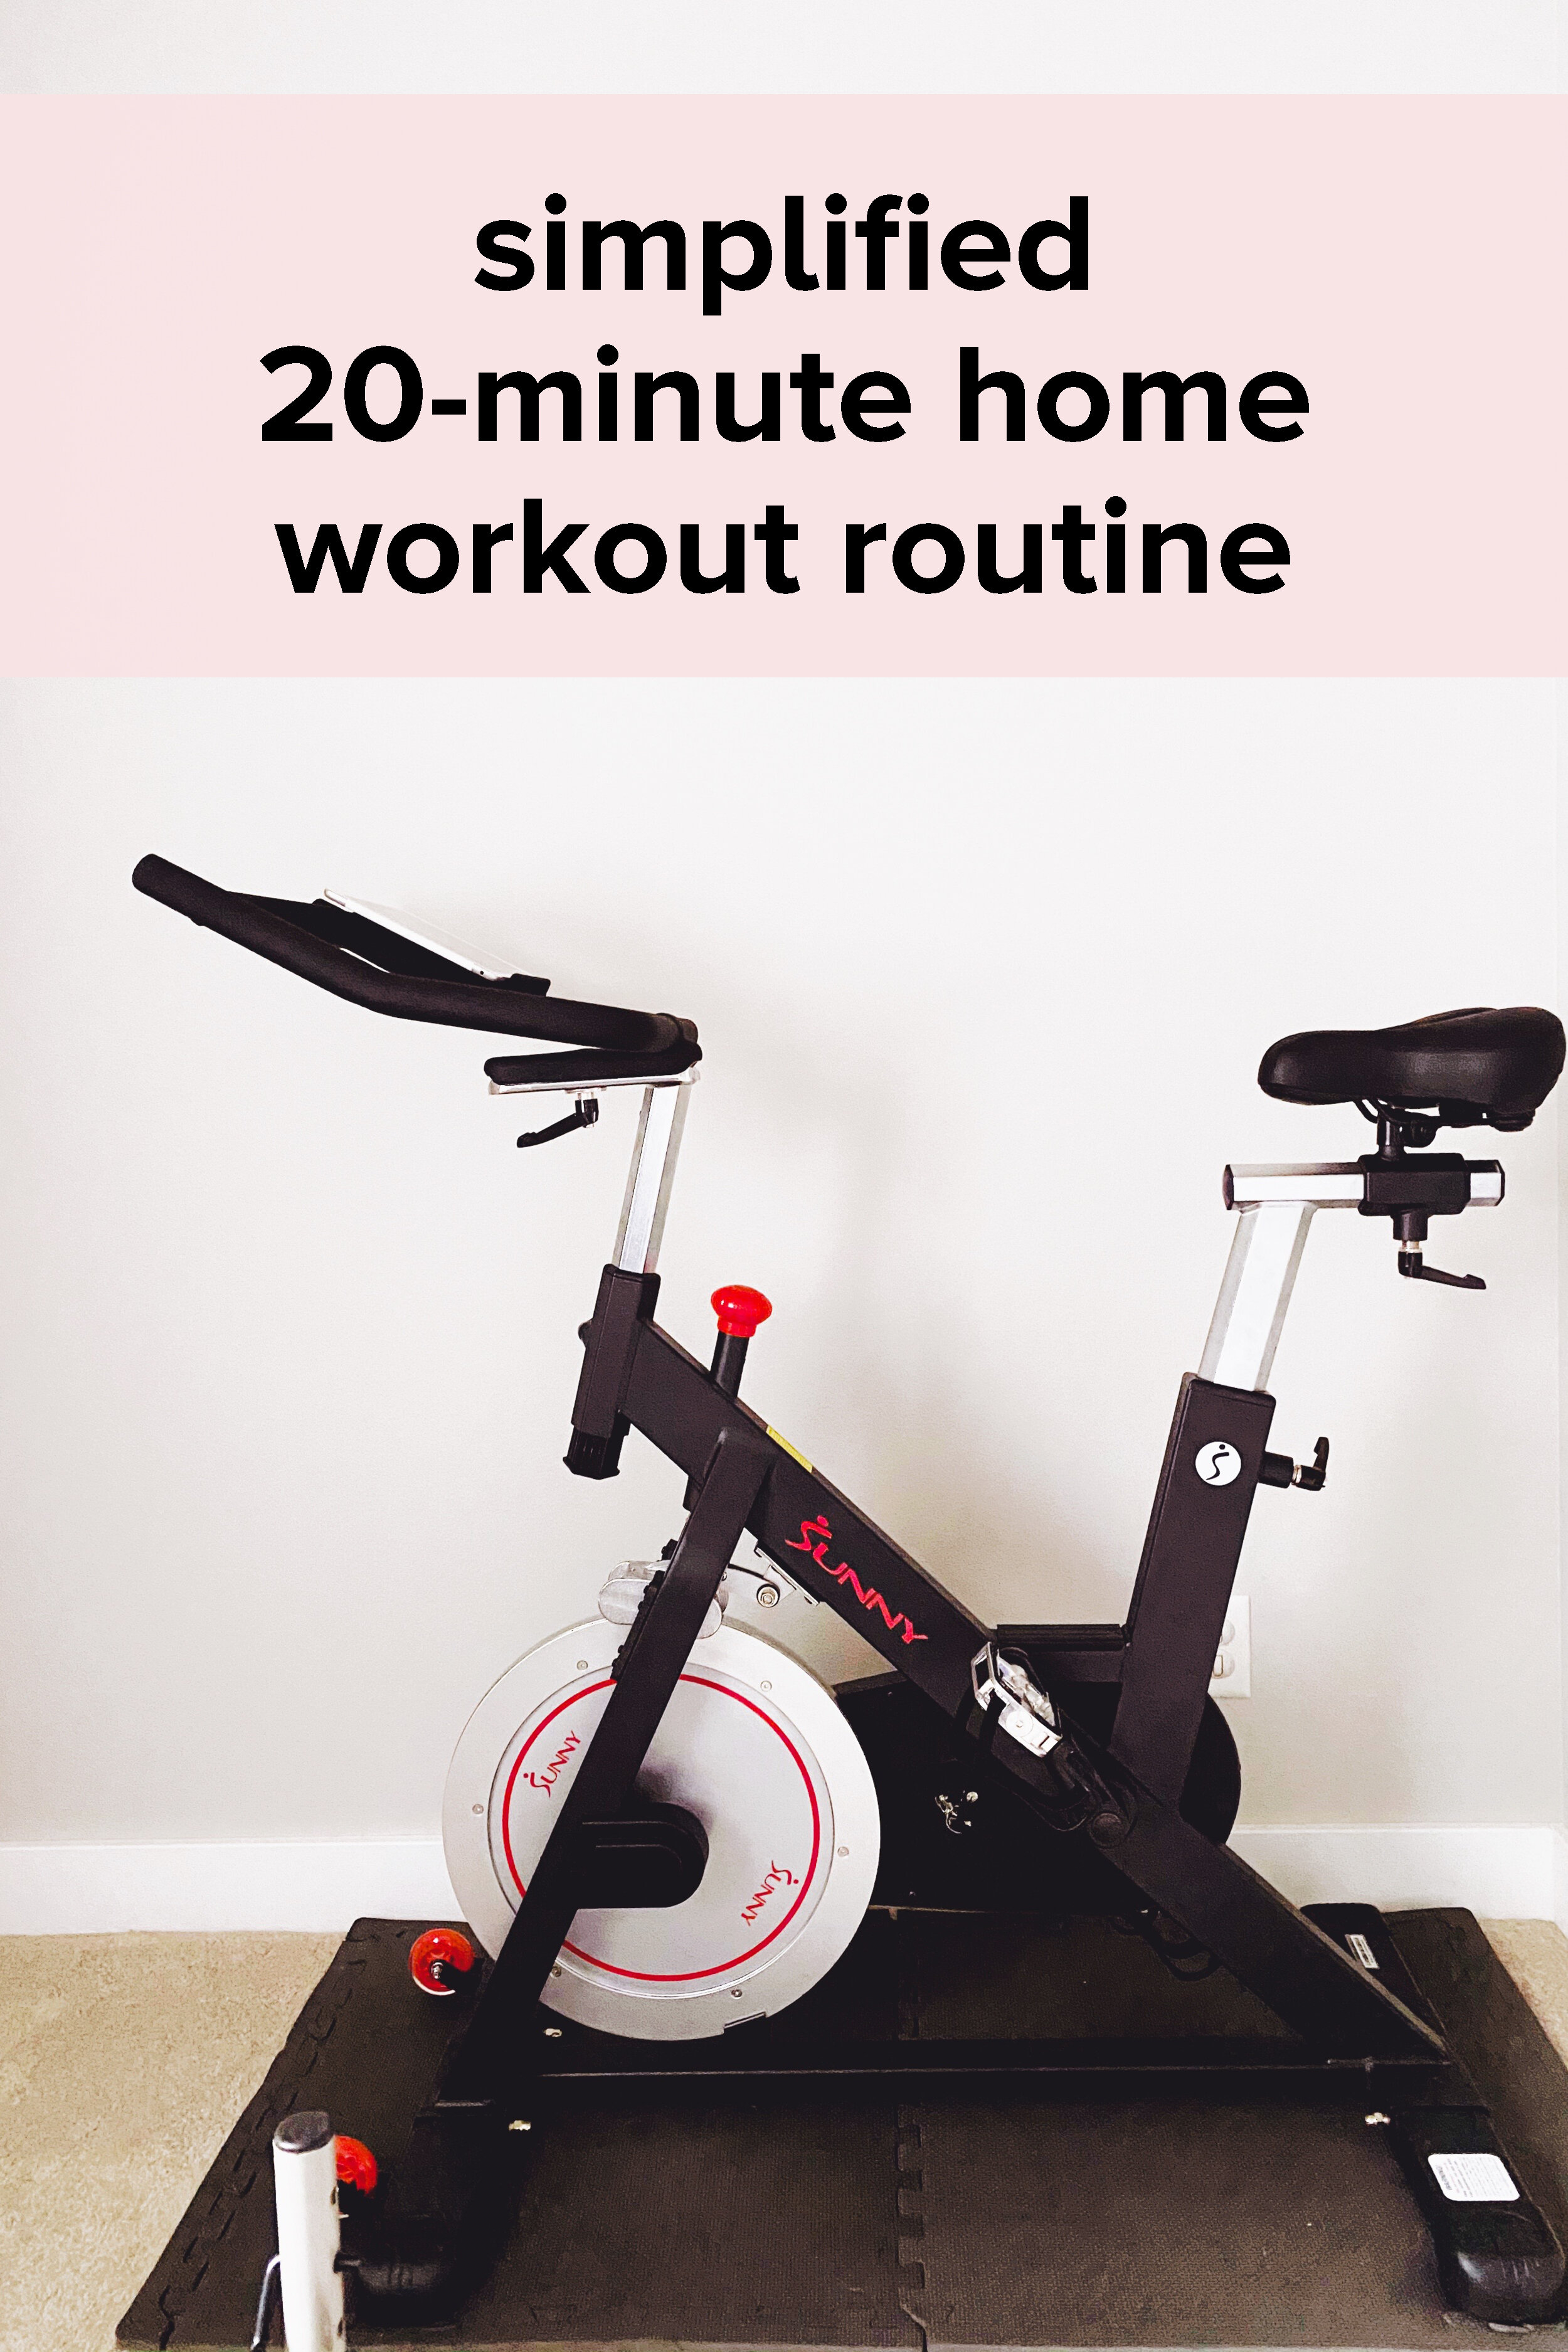 How To Use The Peloton App Without A Peloton Bike My Simplified Home Workout Routine Real Food Whole Life